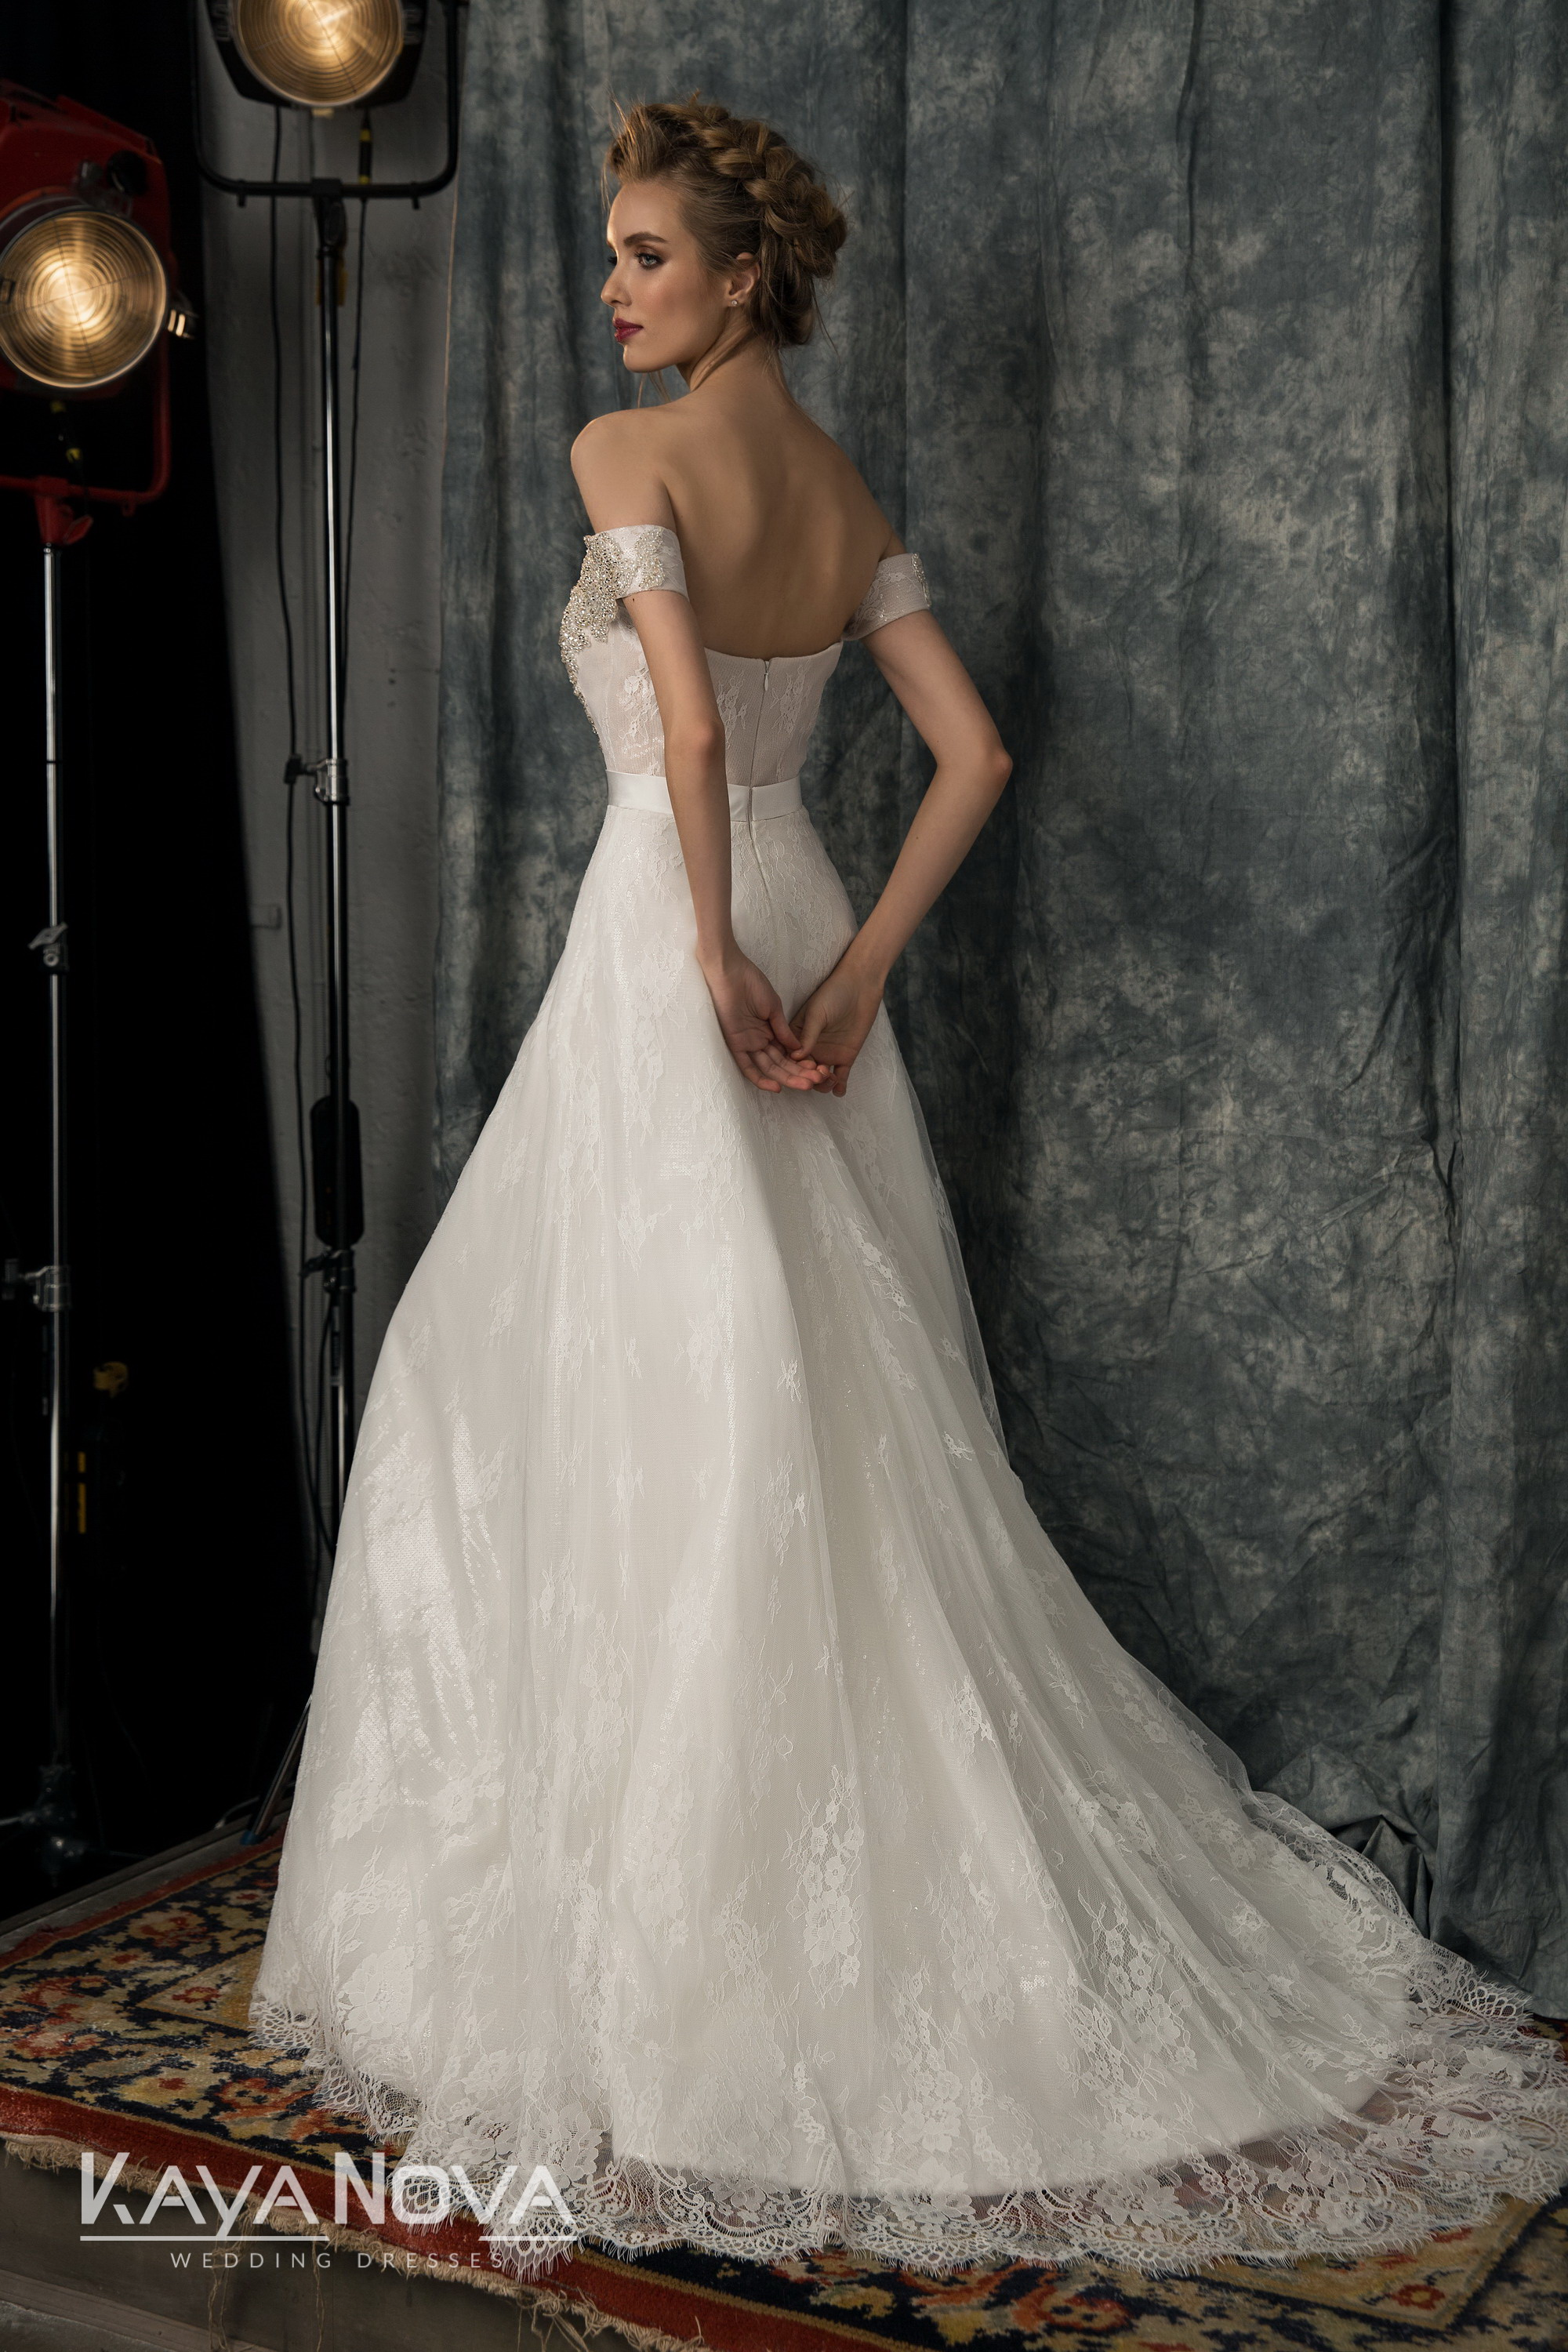 https://kayawedding.com/images/stories/virtuemart/product/Ashley 2.jpg